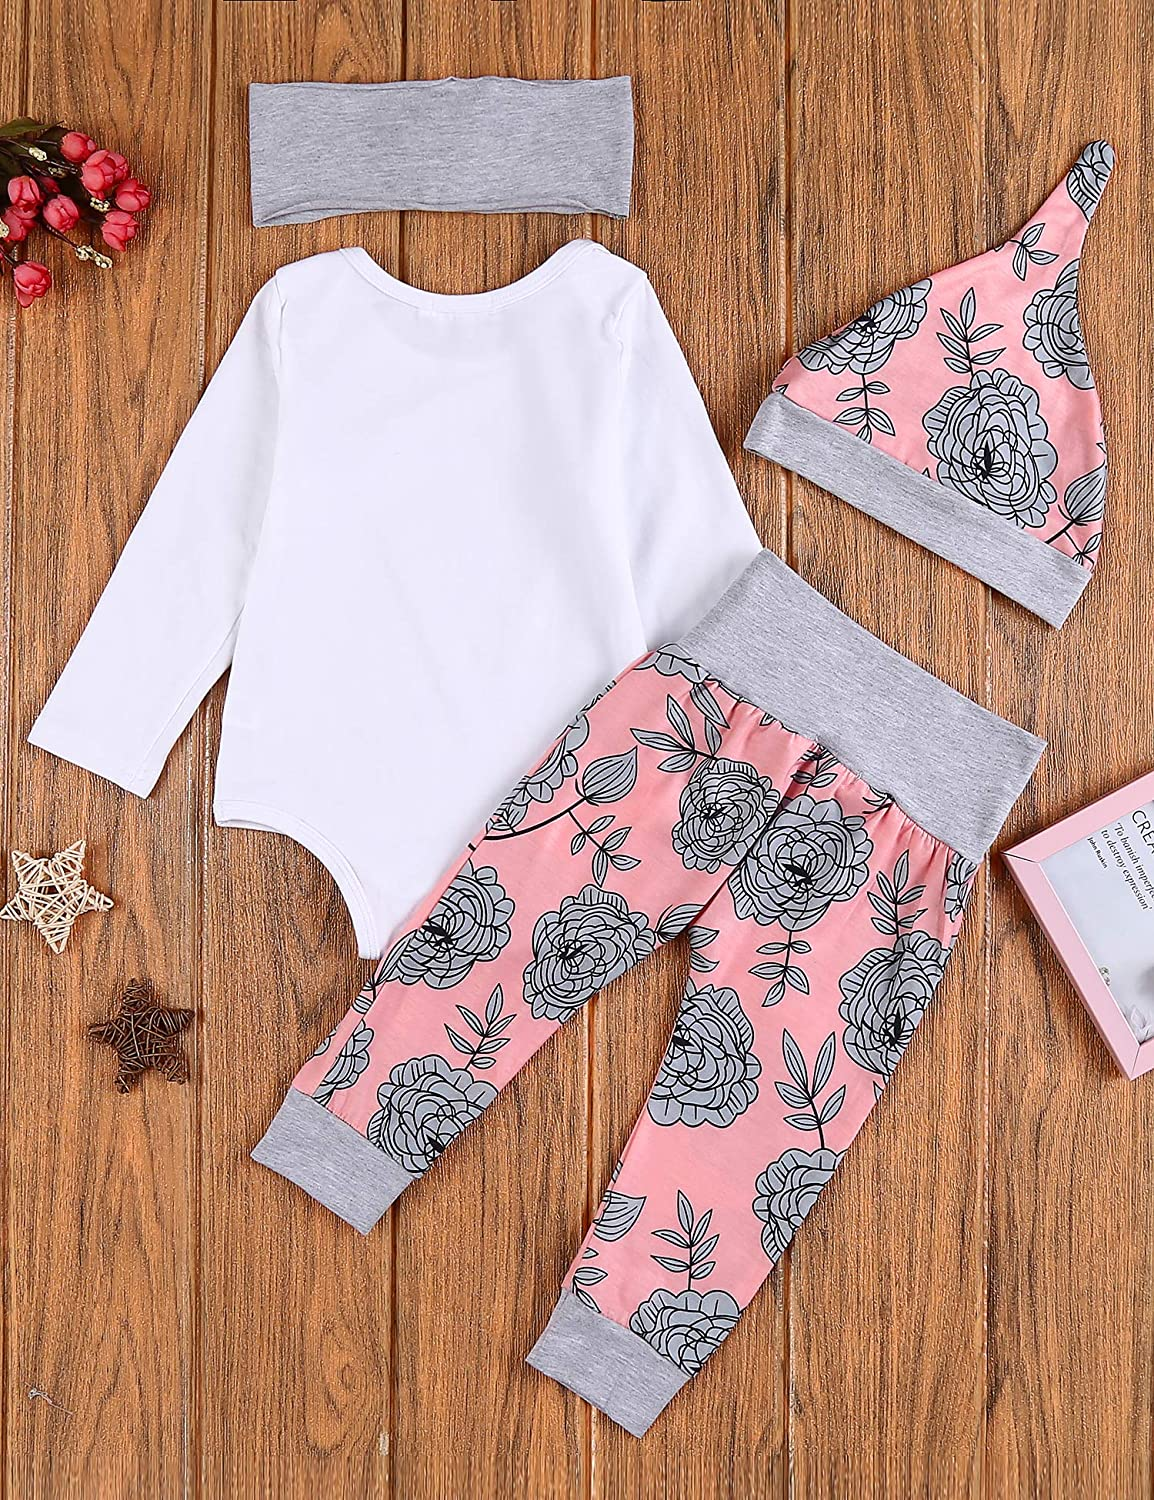 Arshiner Newborn Baby Girls Clothes 4PCS Romper Infant Outfits Sets Onsies Tops Pants with Hats and Headband